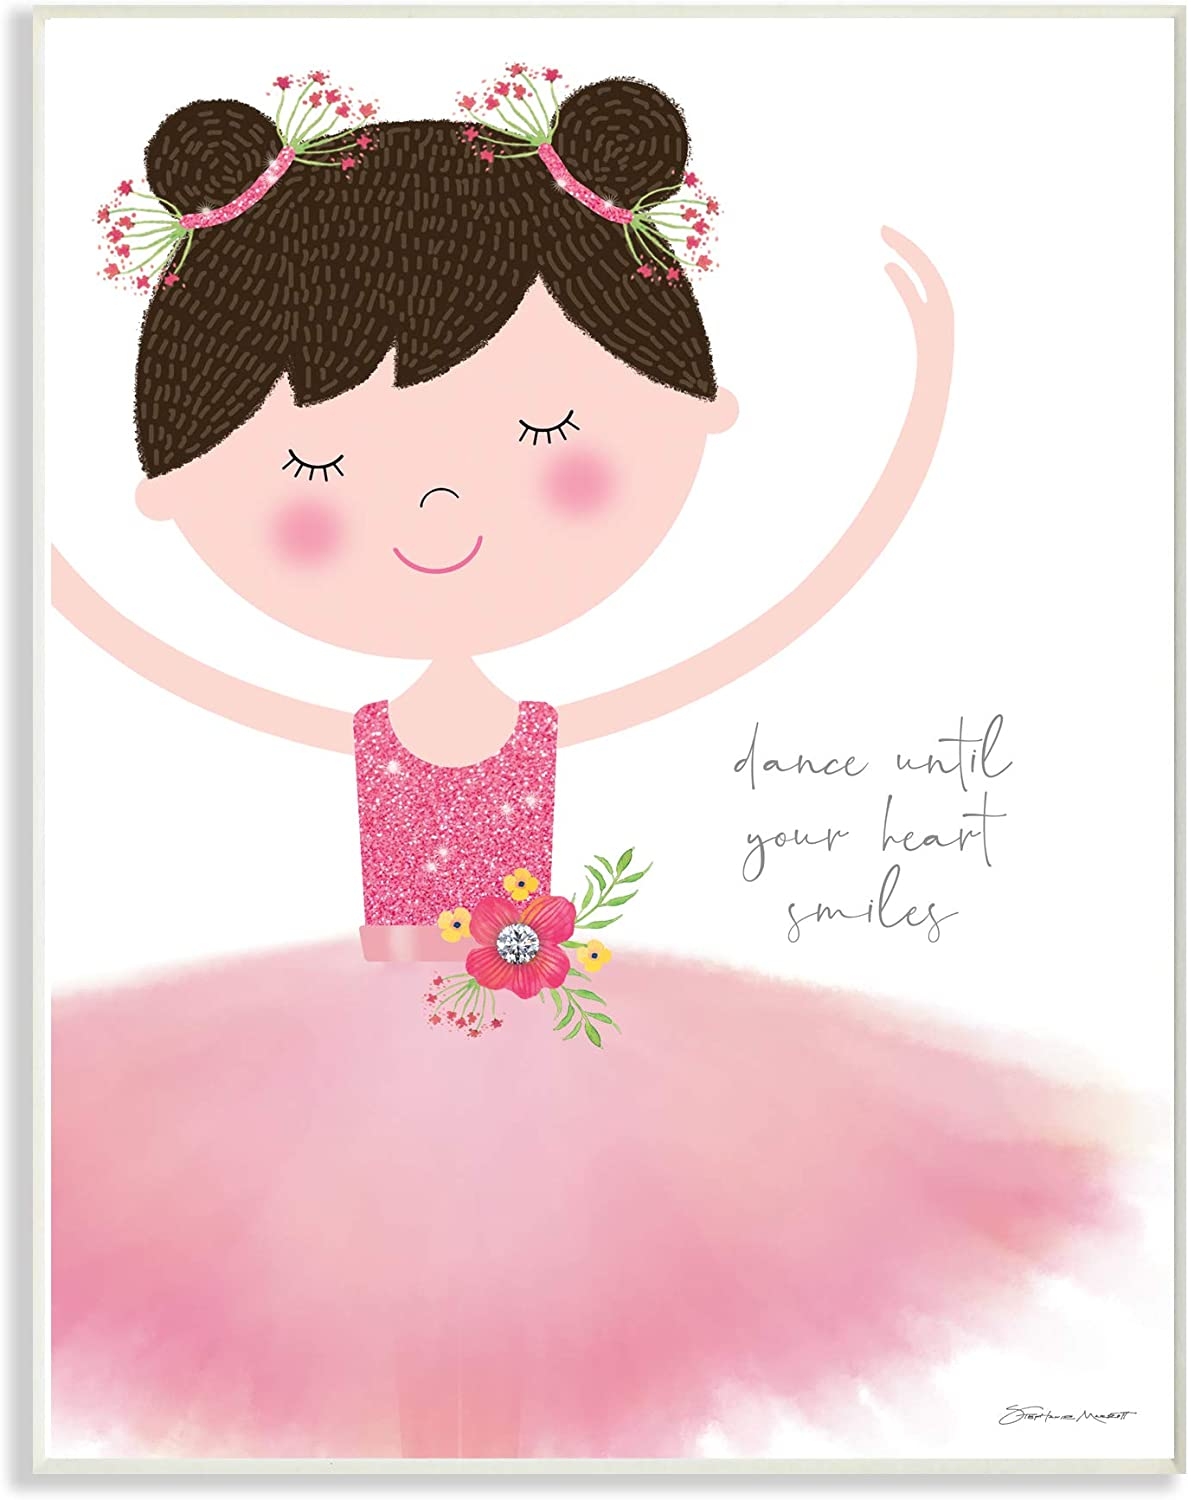 The Kids Room by Stupell Dance Until Your Heart Smiles Brown Haired Ballerina in Pink Tutu Wall Plaque Art, 12x18, Multi-color